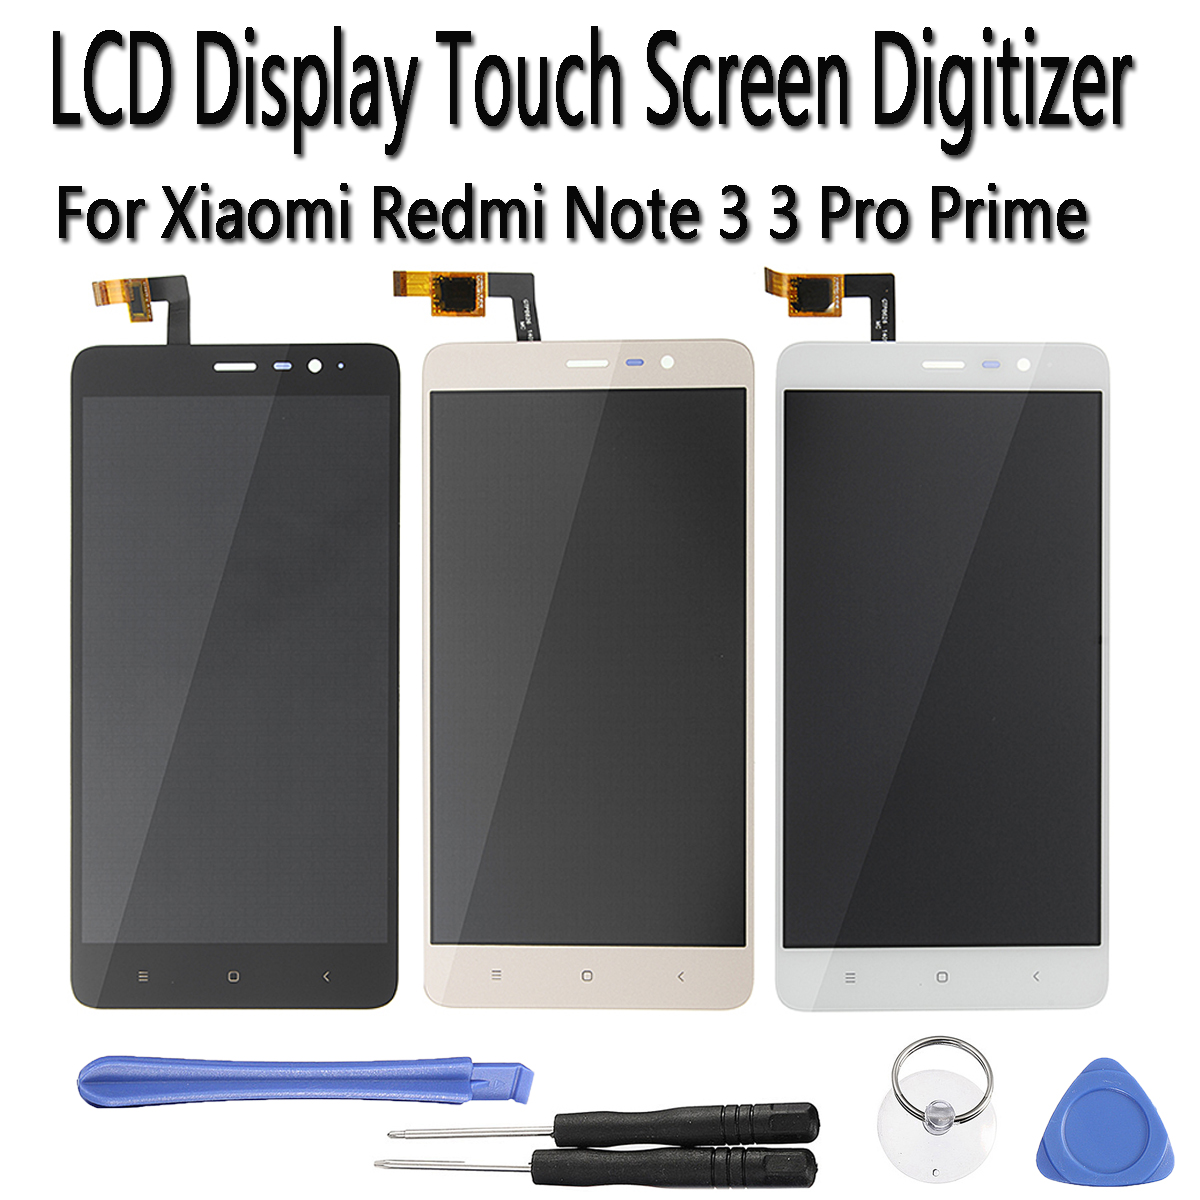 5.5inch Mobile Phone Touchs Screen LCD Display Screen Digitizer Assembly Glass Panel Replacement Parts For Xiaomi Redmi Note 3